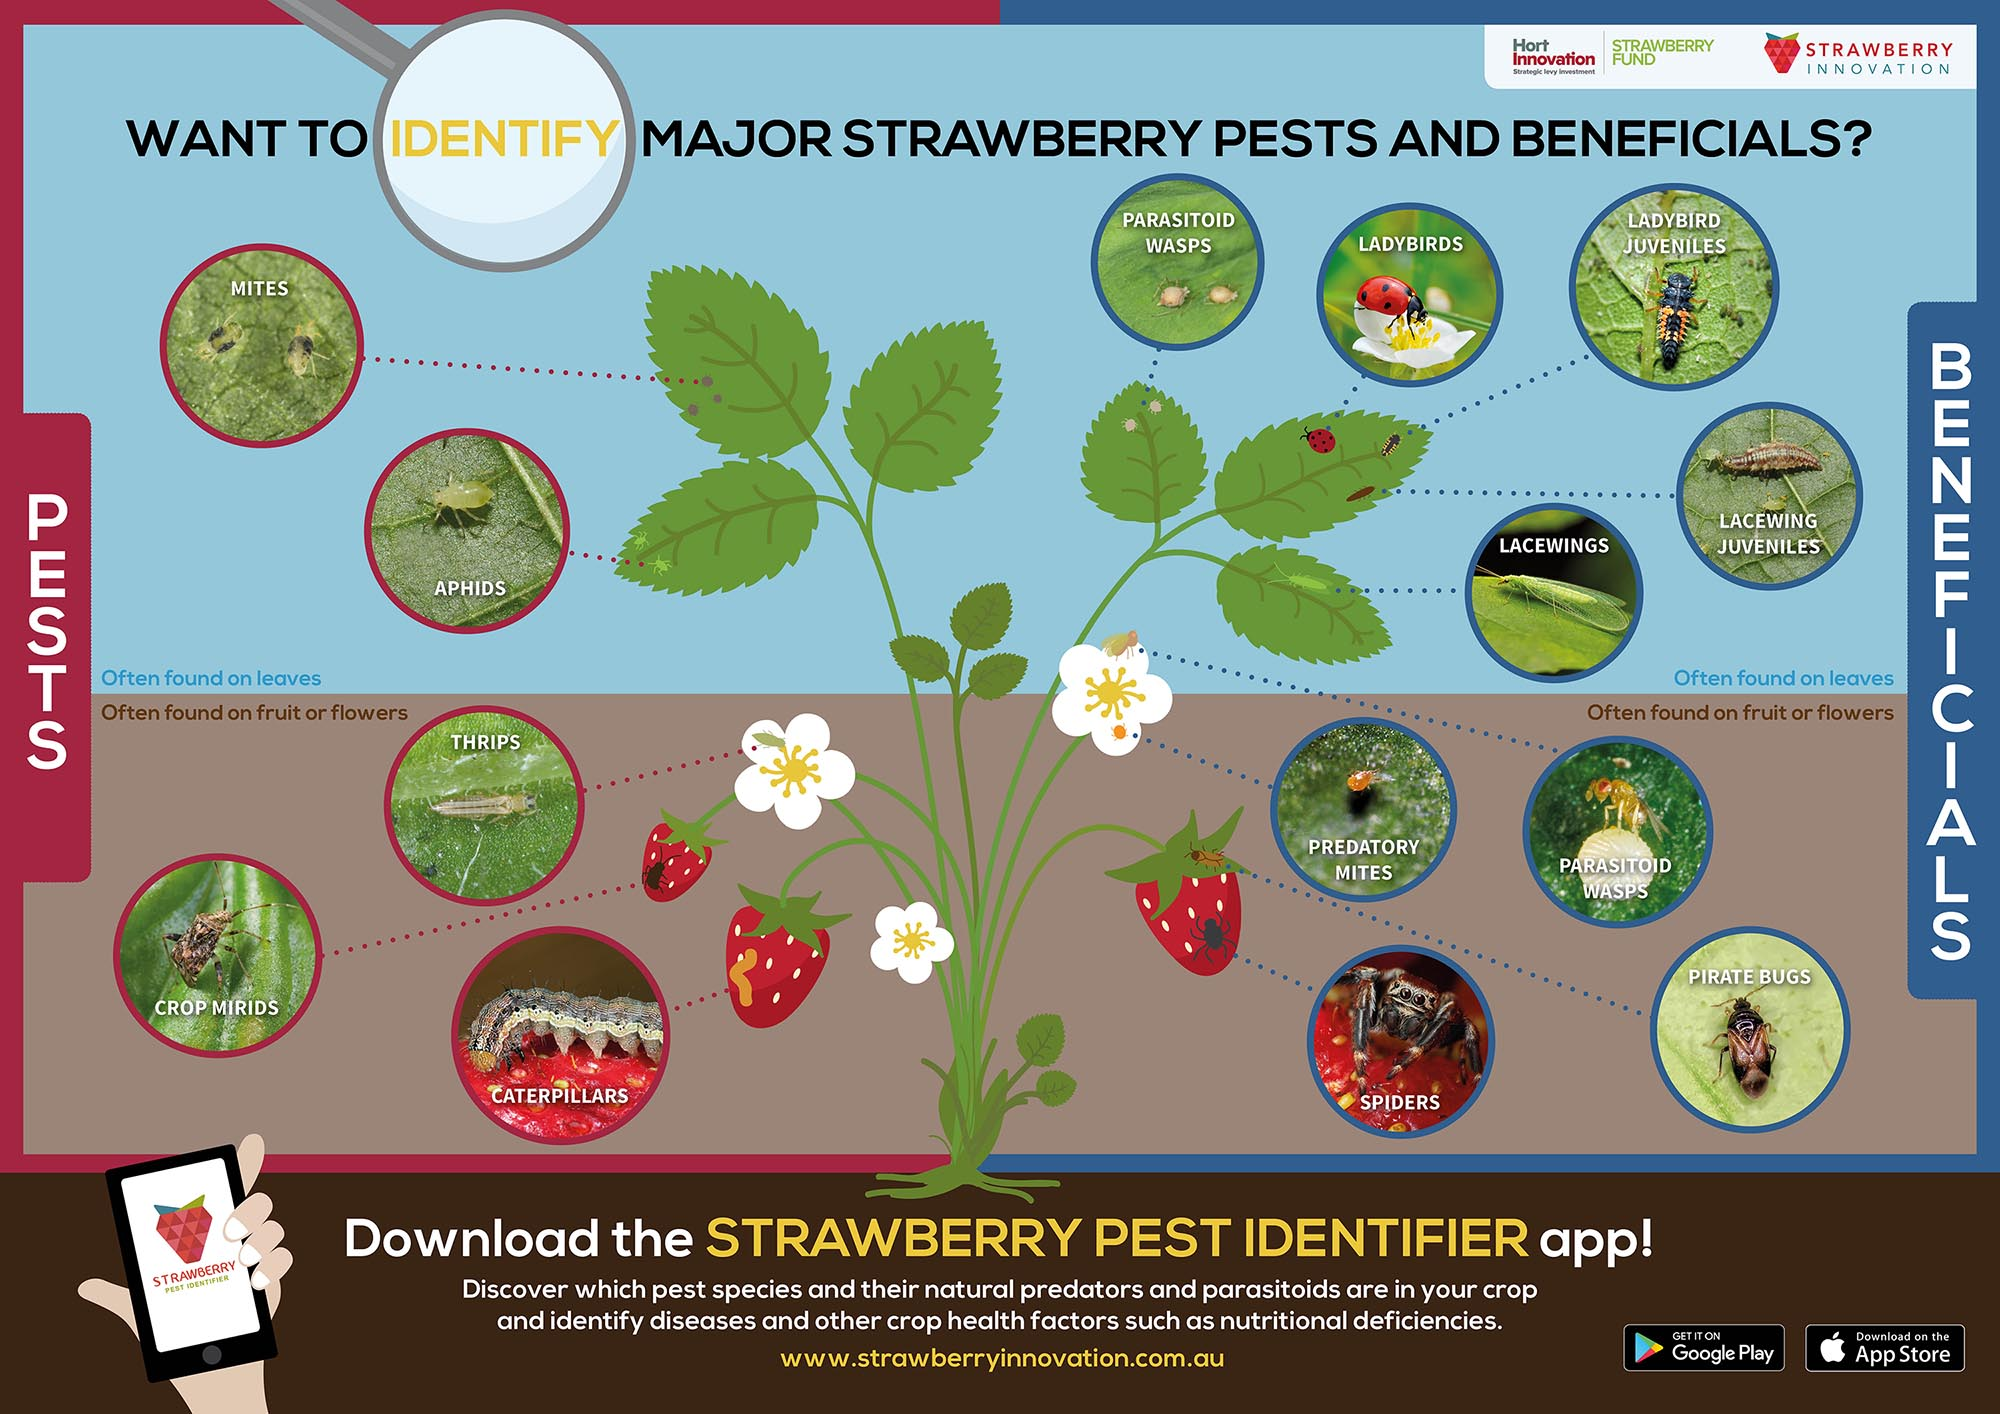 Want to identify major strawberry pests and beneficials? - RMCG